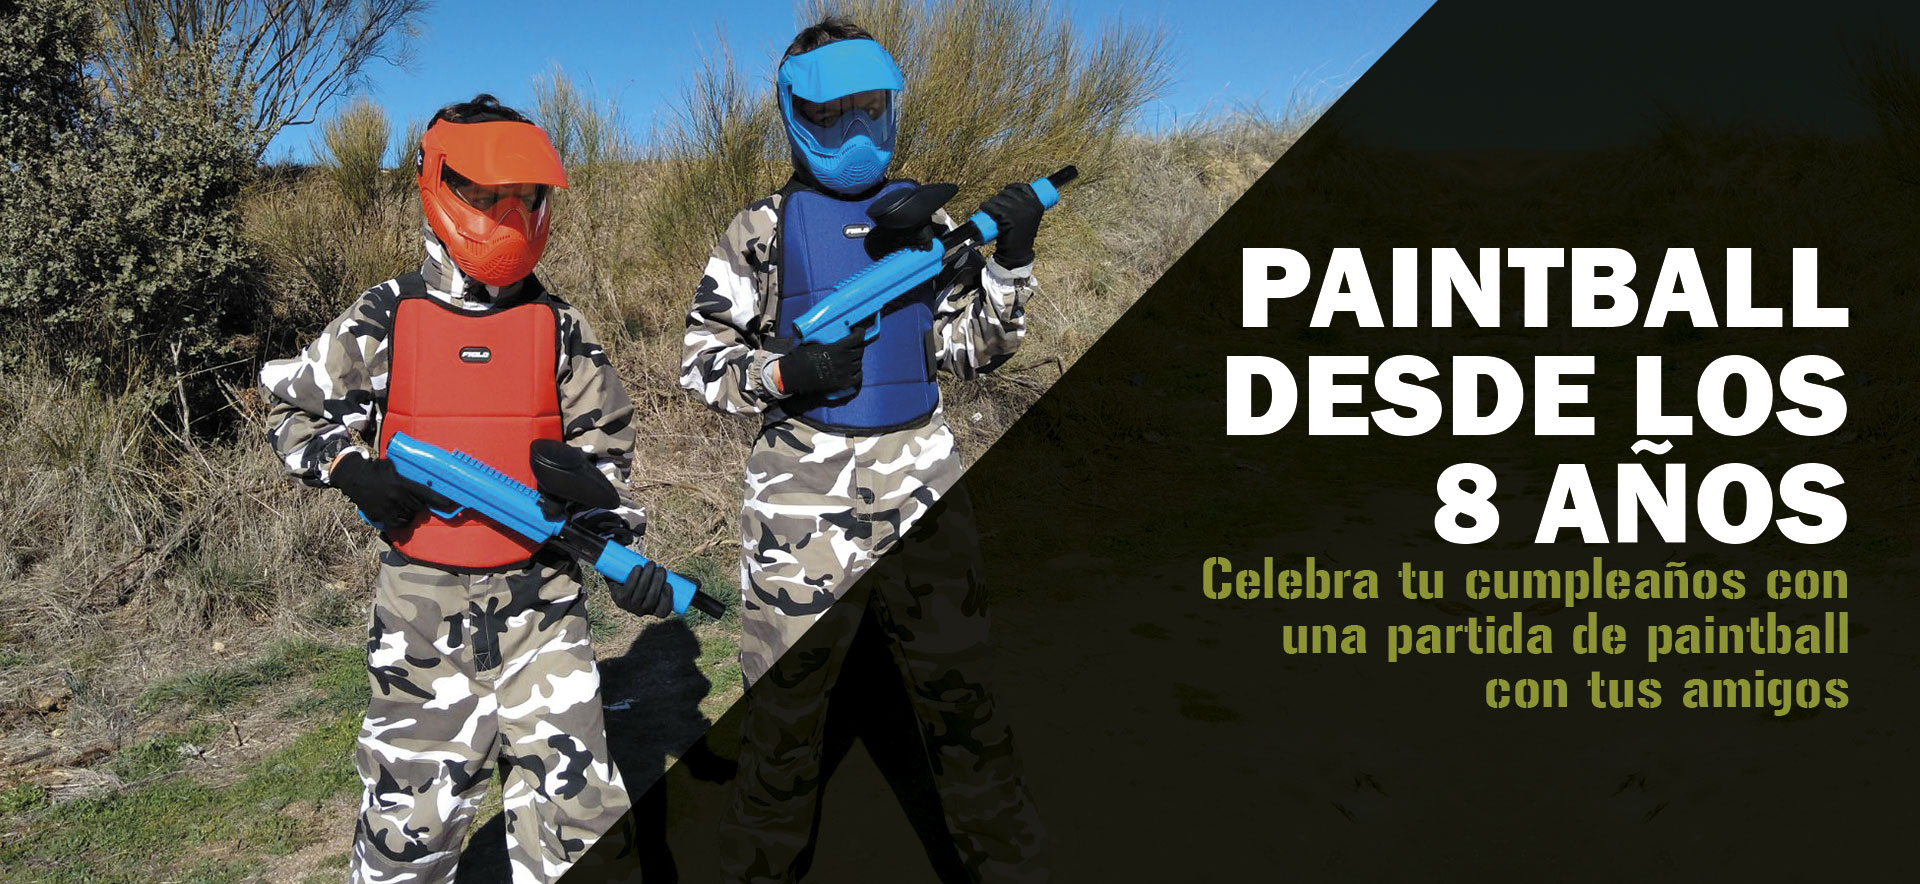 Paintball a partir de 9 años en Madrid